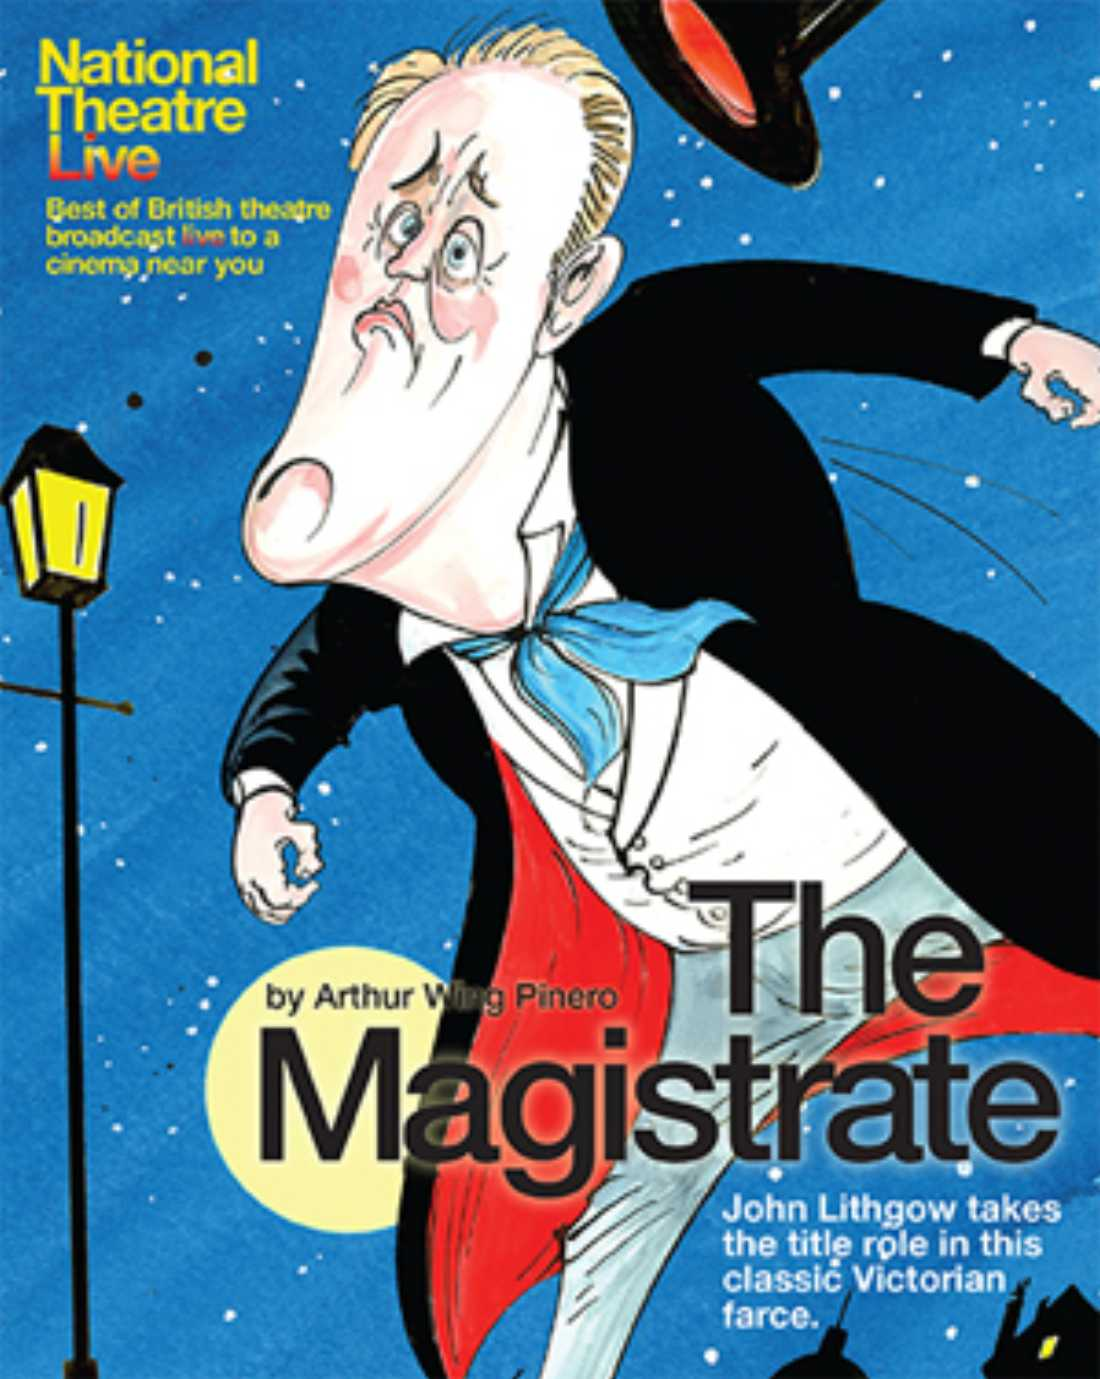 The Magistrate stars John Lithgow and screens Wednesday at Modern Art Museum of Fort Worth.